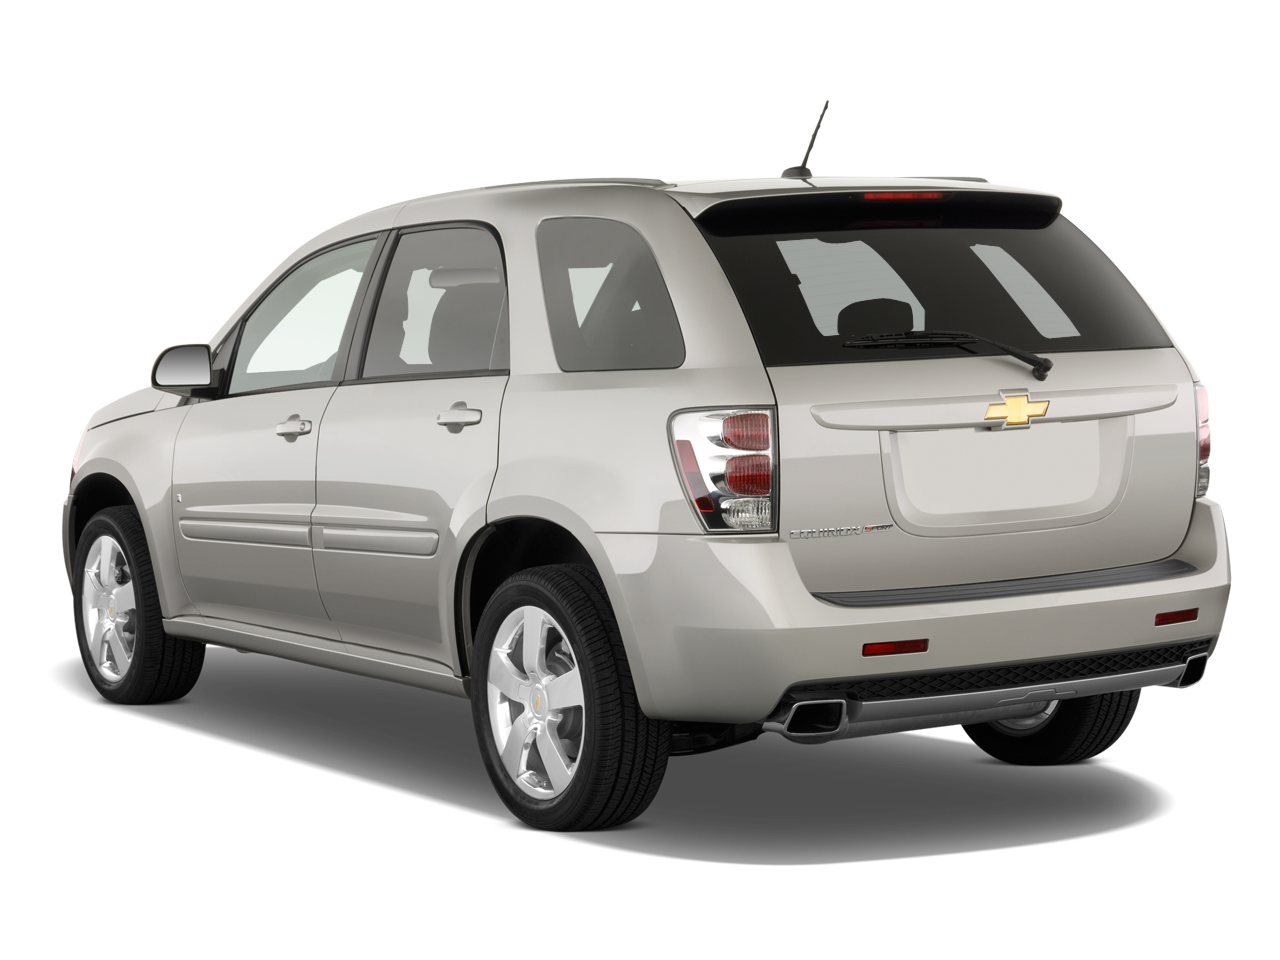 2008 Chevy Equinox Fuel Cell Diary - Day Two - Latest News ...